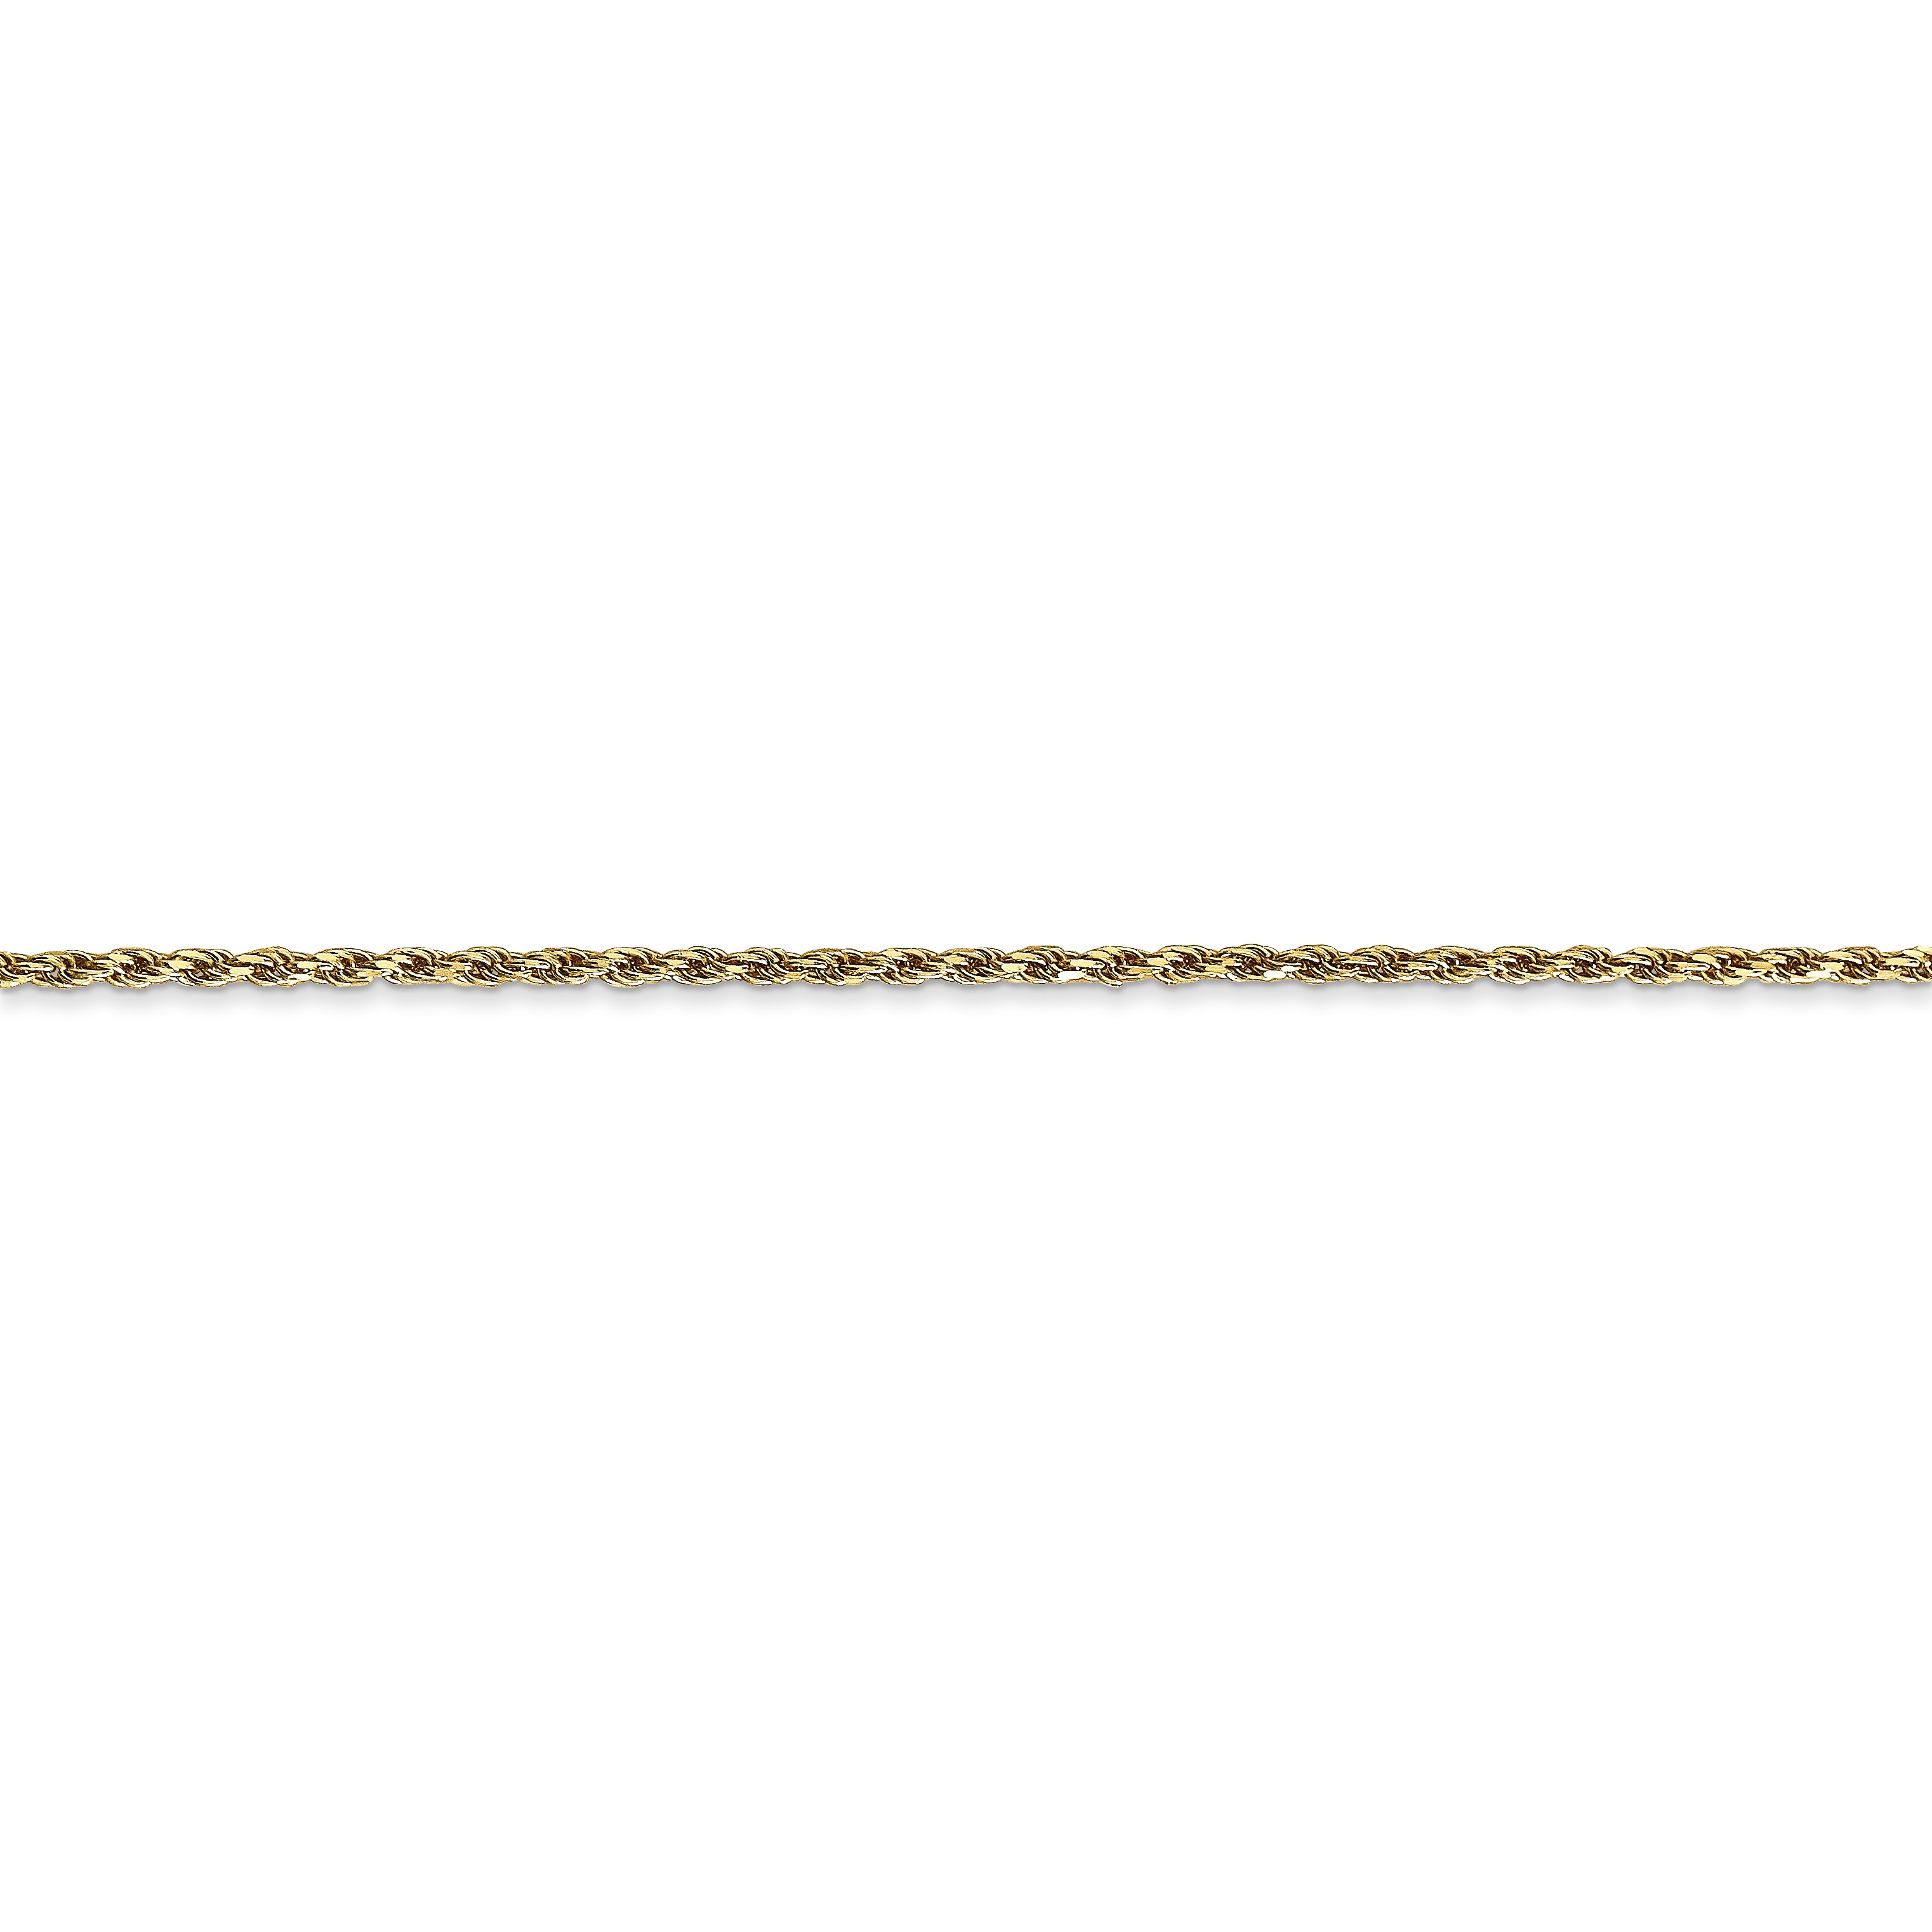 14k Yellow Gold 1.3mm Solid Lobster Link Rope Chain Necklace 24 Inch Pendant Charm Machine Made Fine Jewelry Gifts For Women For Her - image 1 of 5